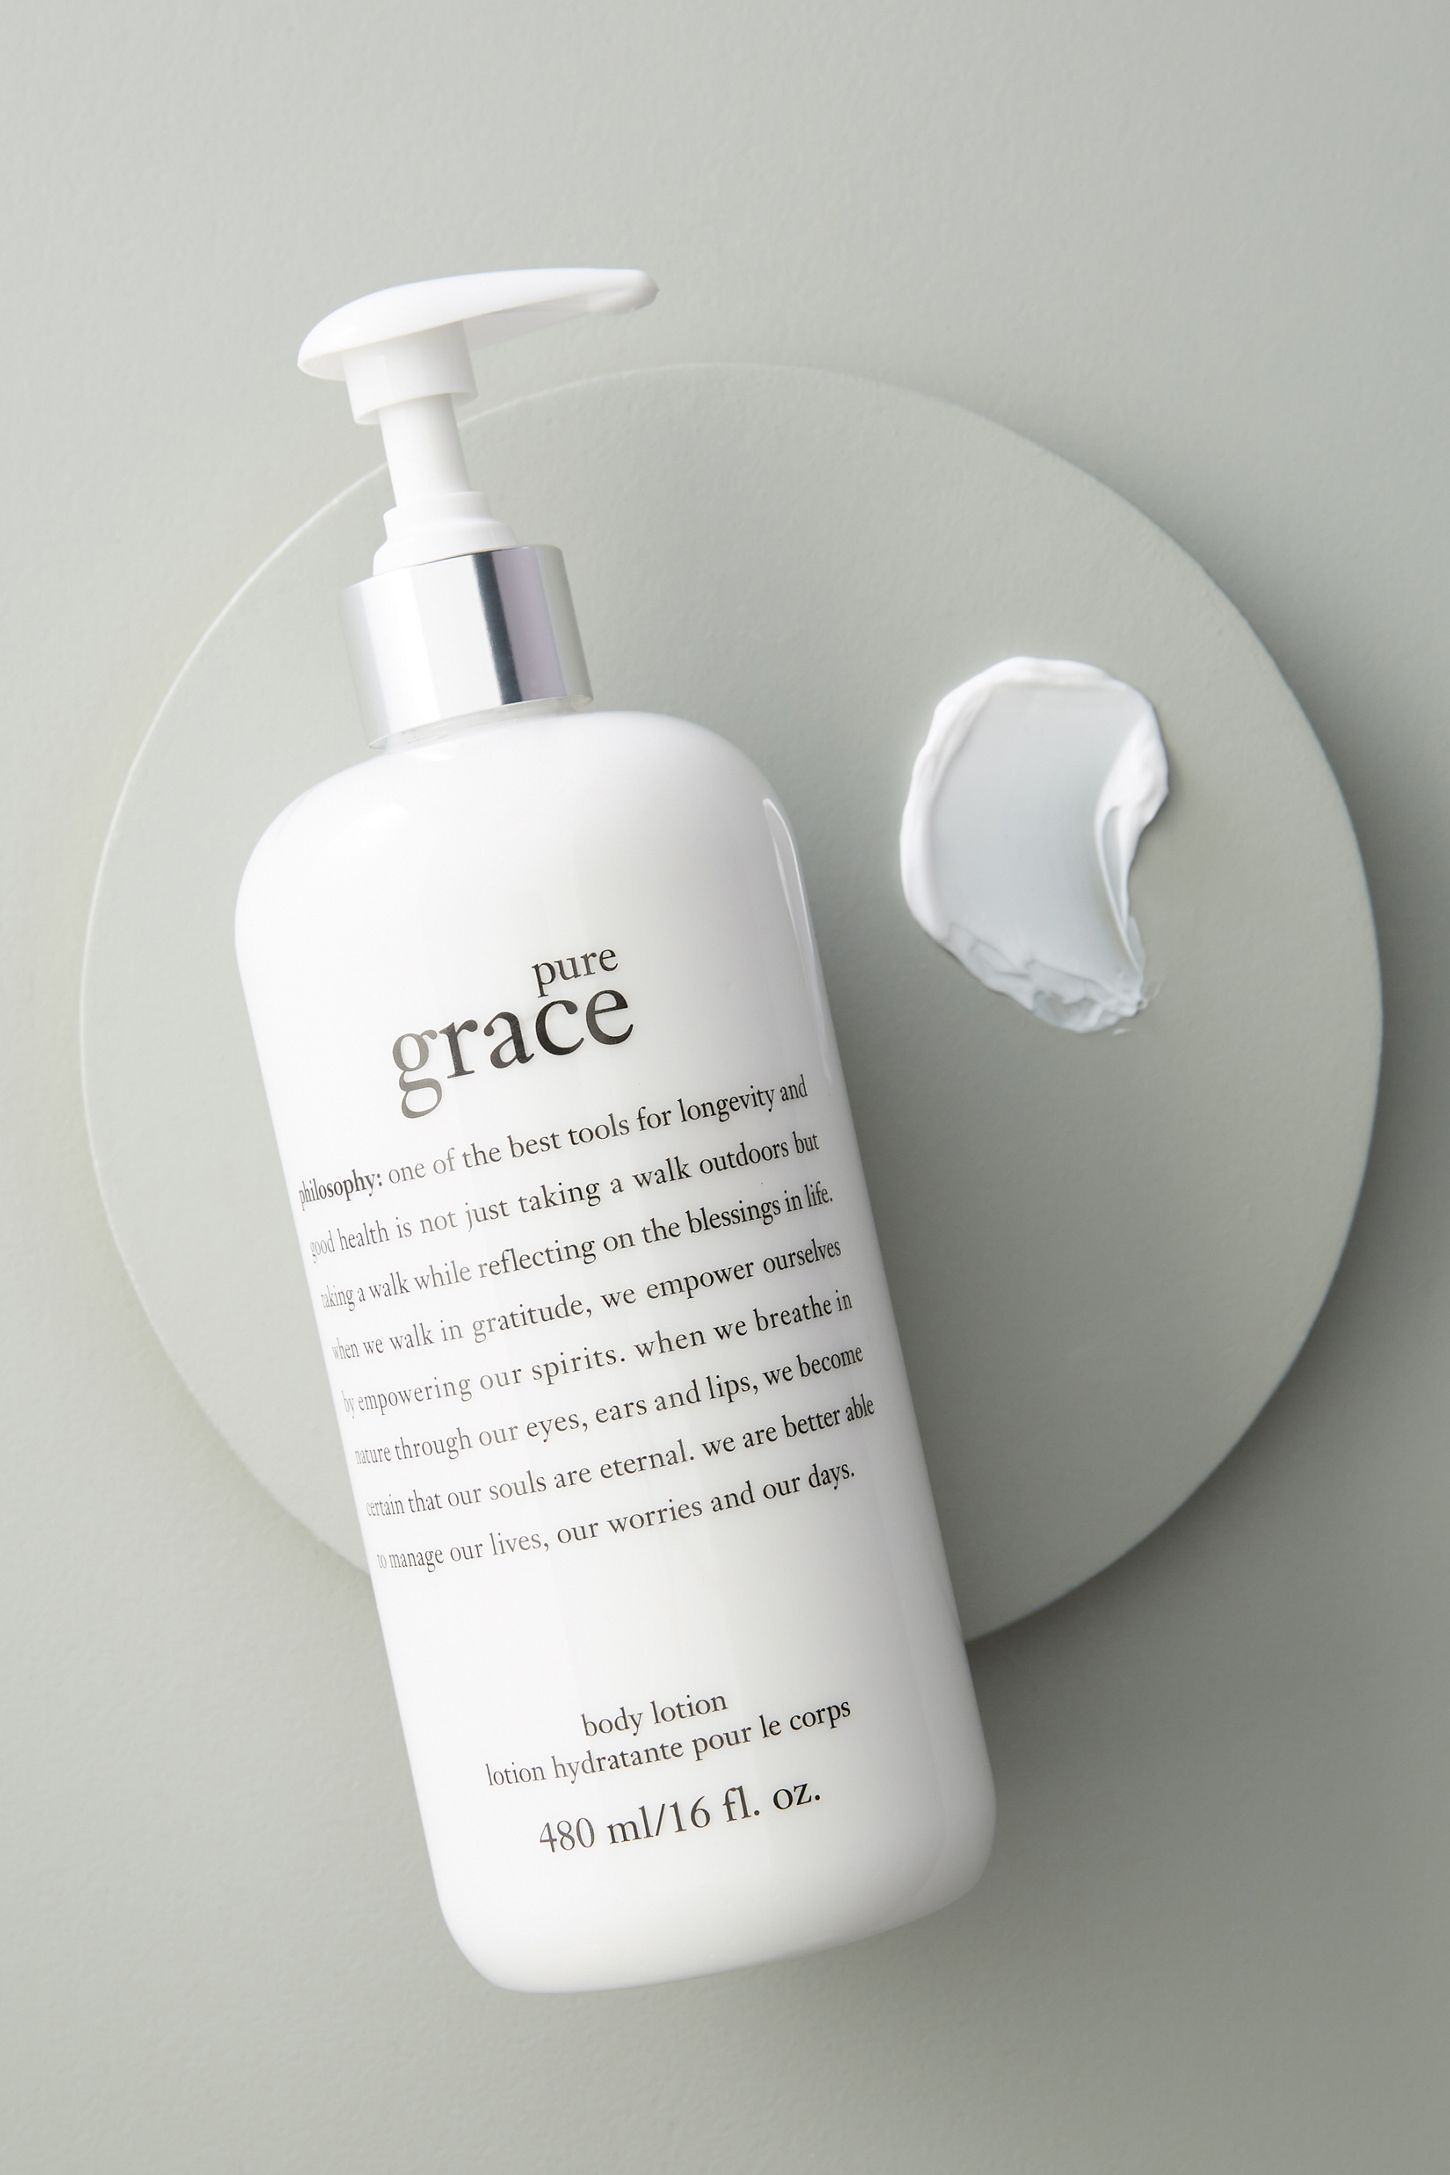 Philosophy Pure Grace Body Lotion Pure Products Body Lotion Lotion